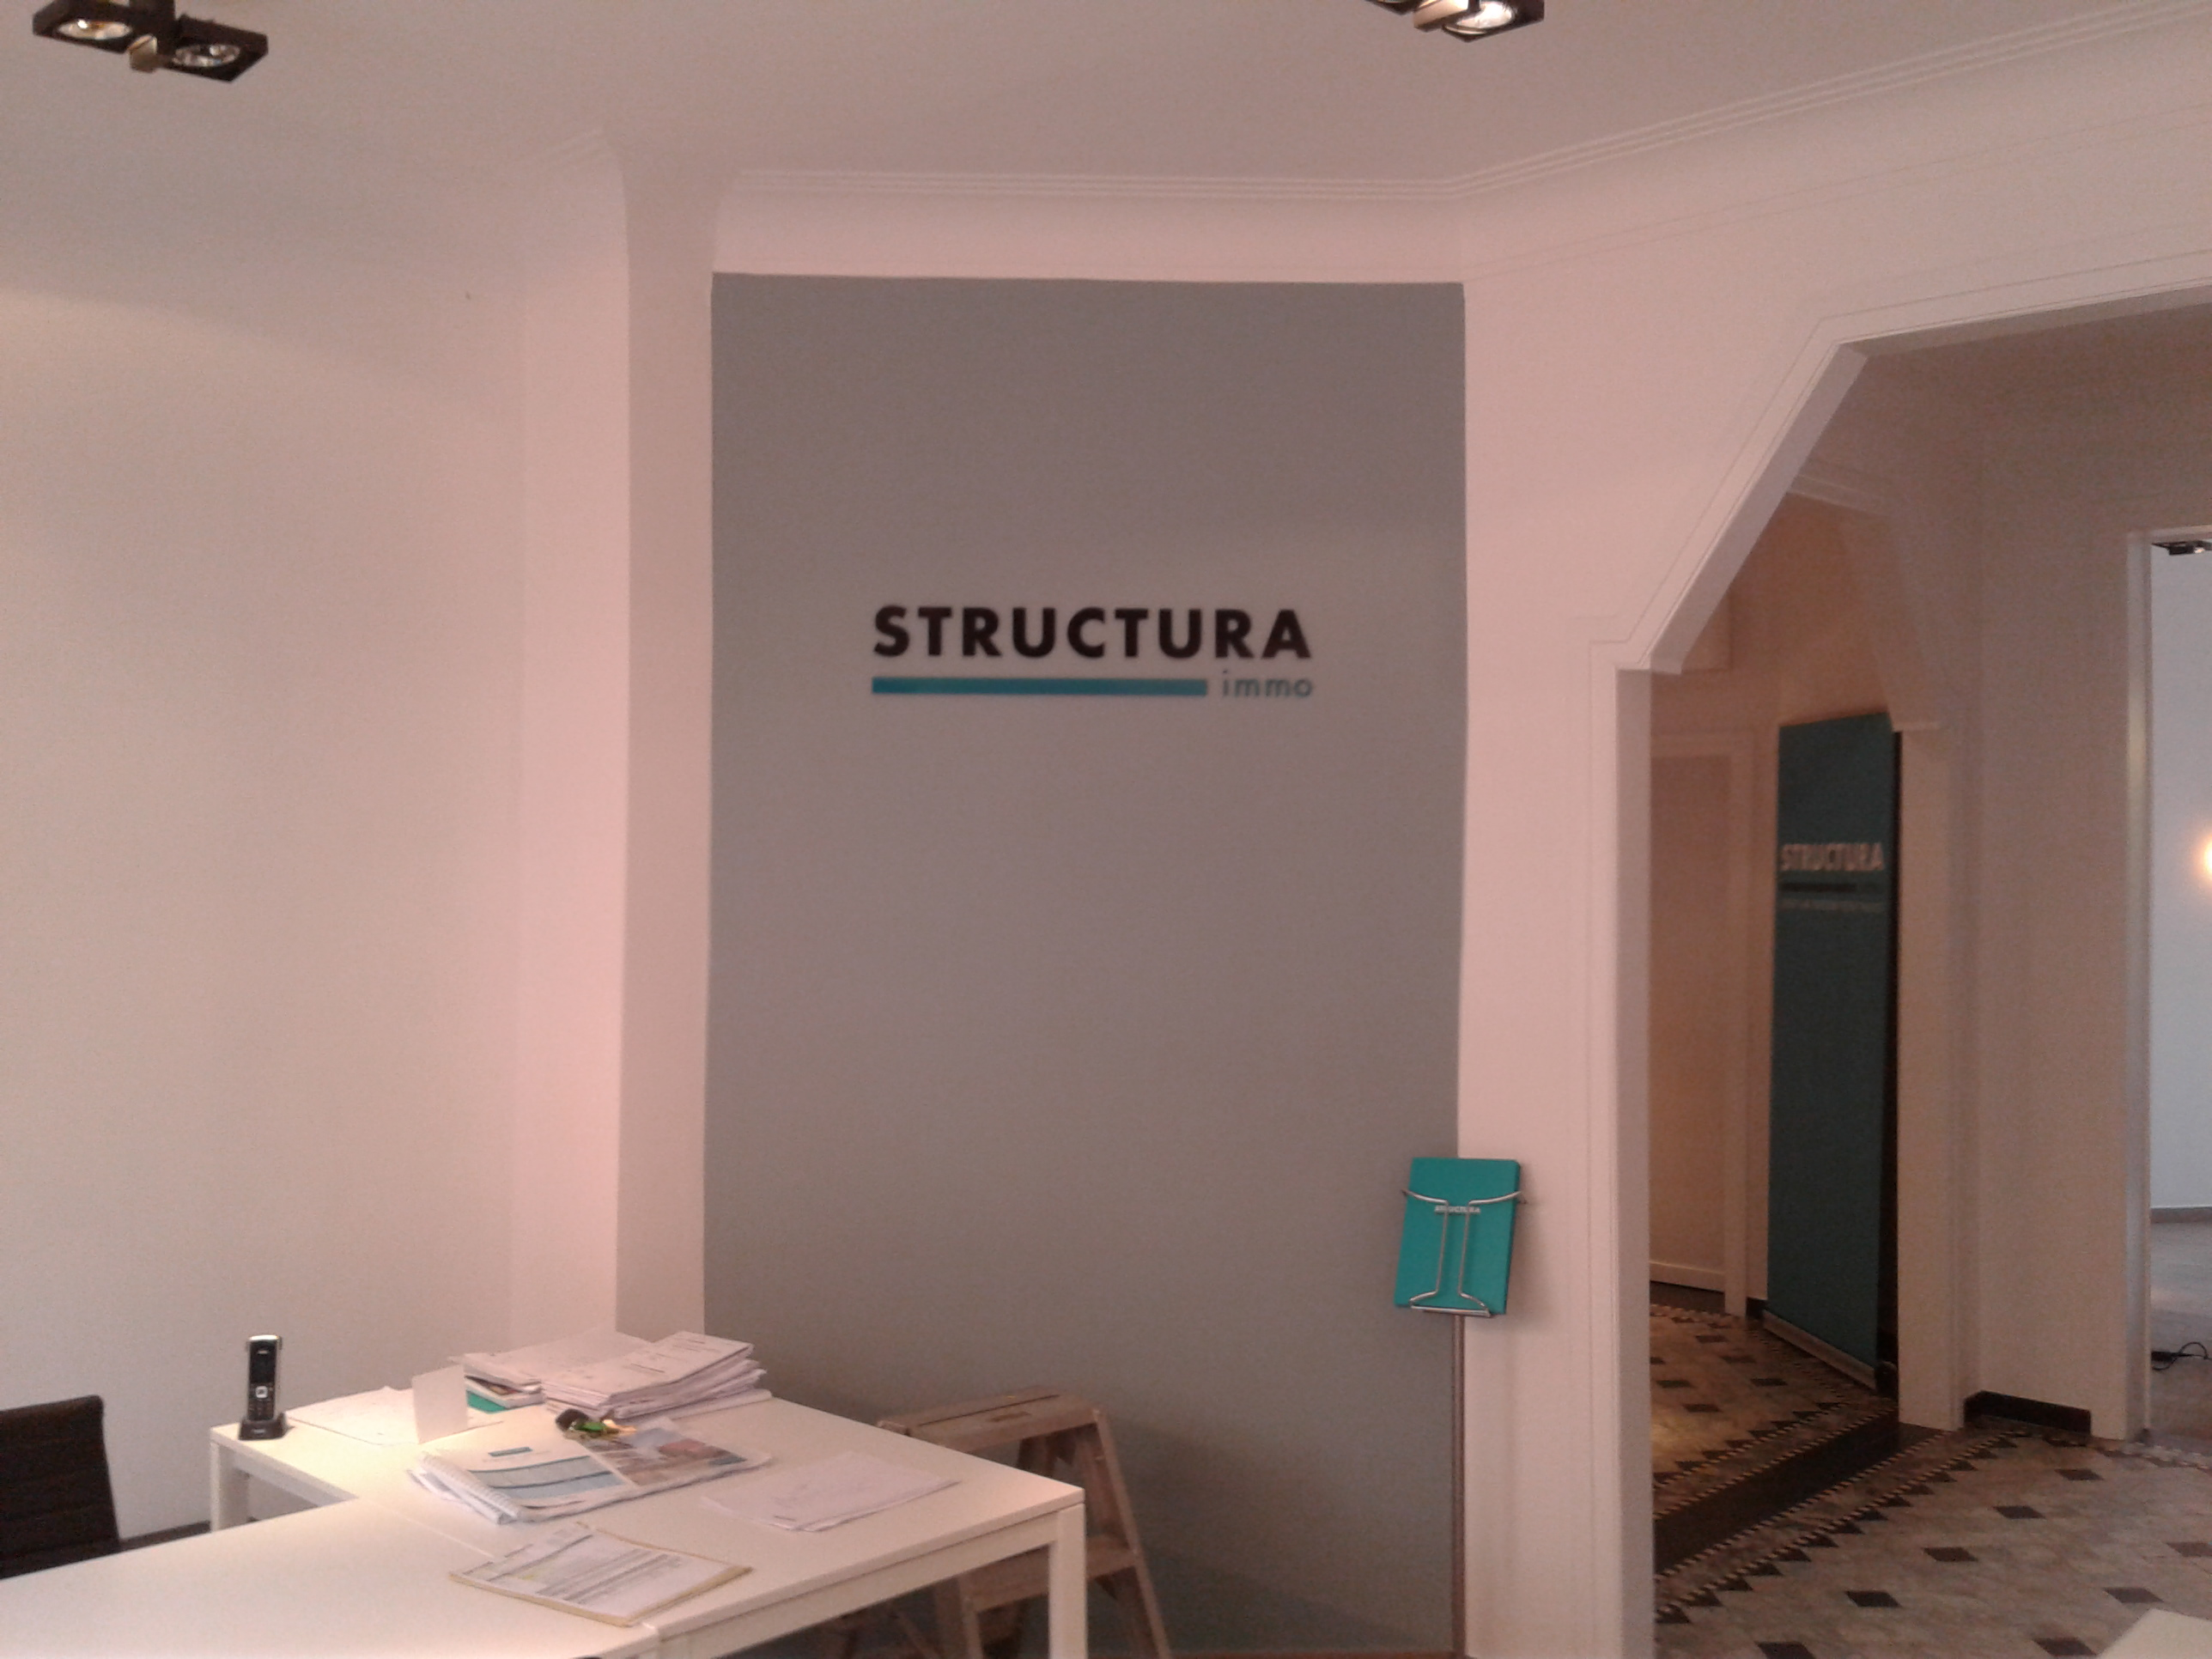 Gevelletters Structura Immo